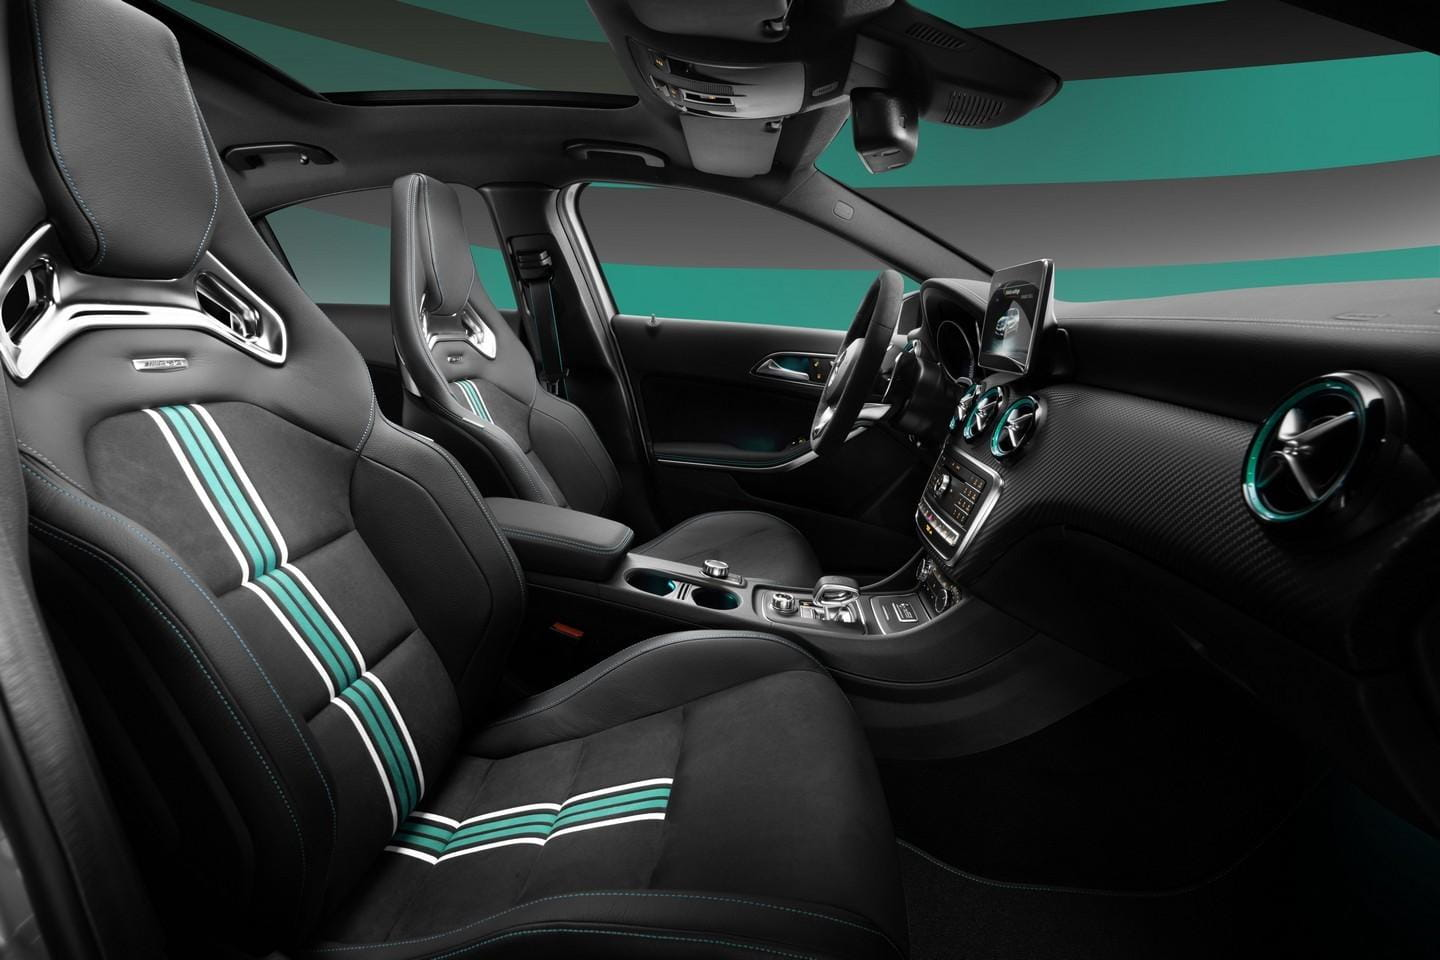 Mercedes_A45_AMG_petronas_2015_special_Edition_3